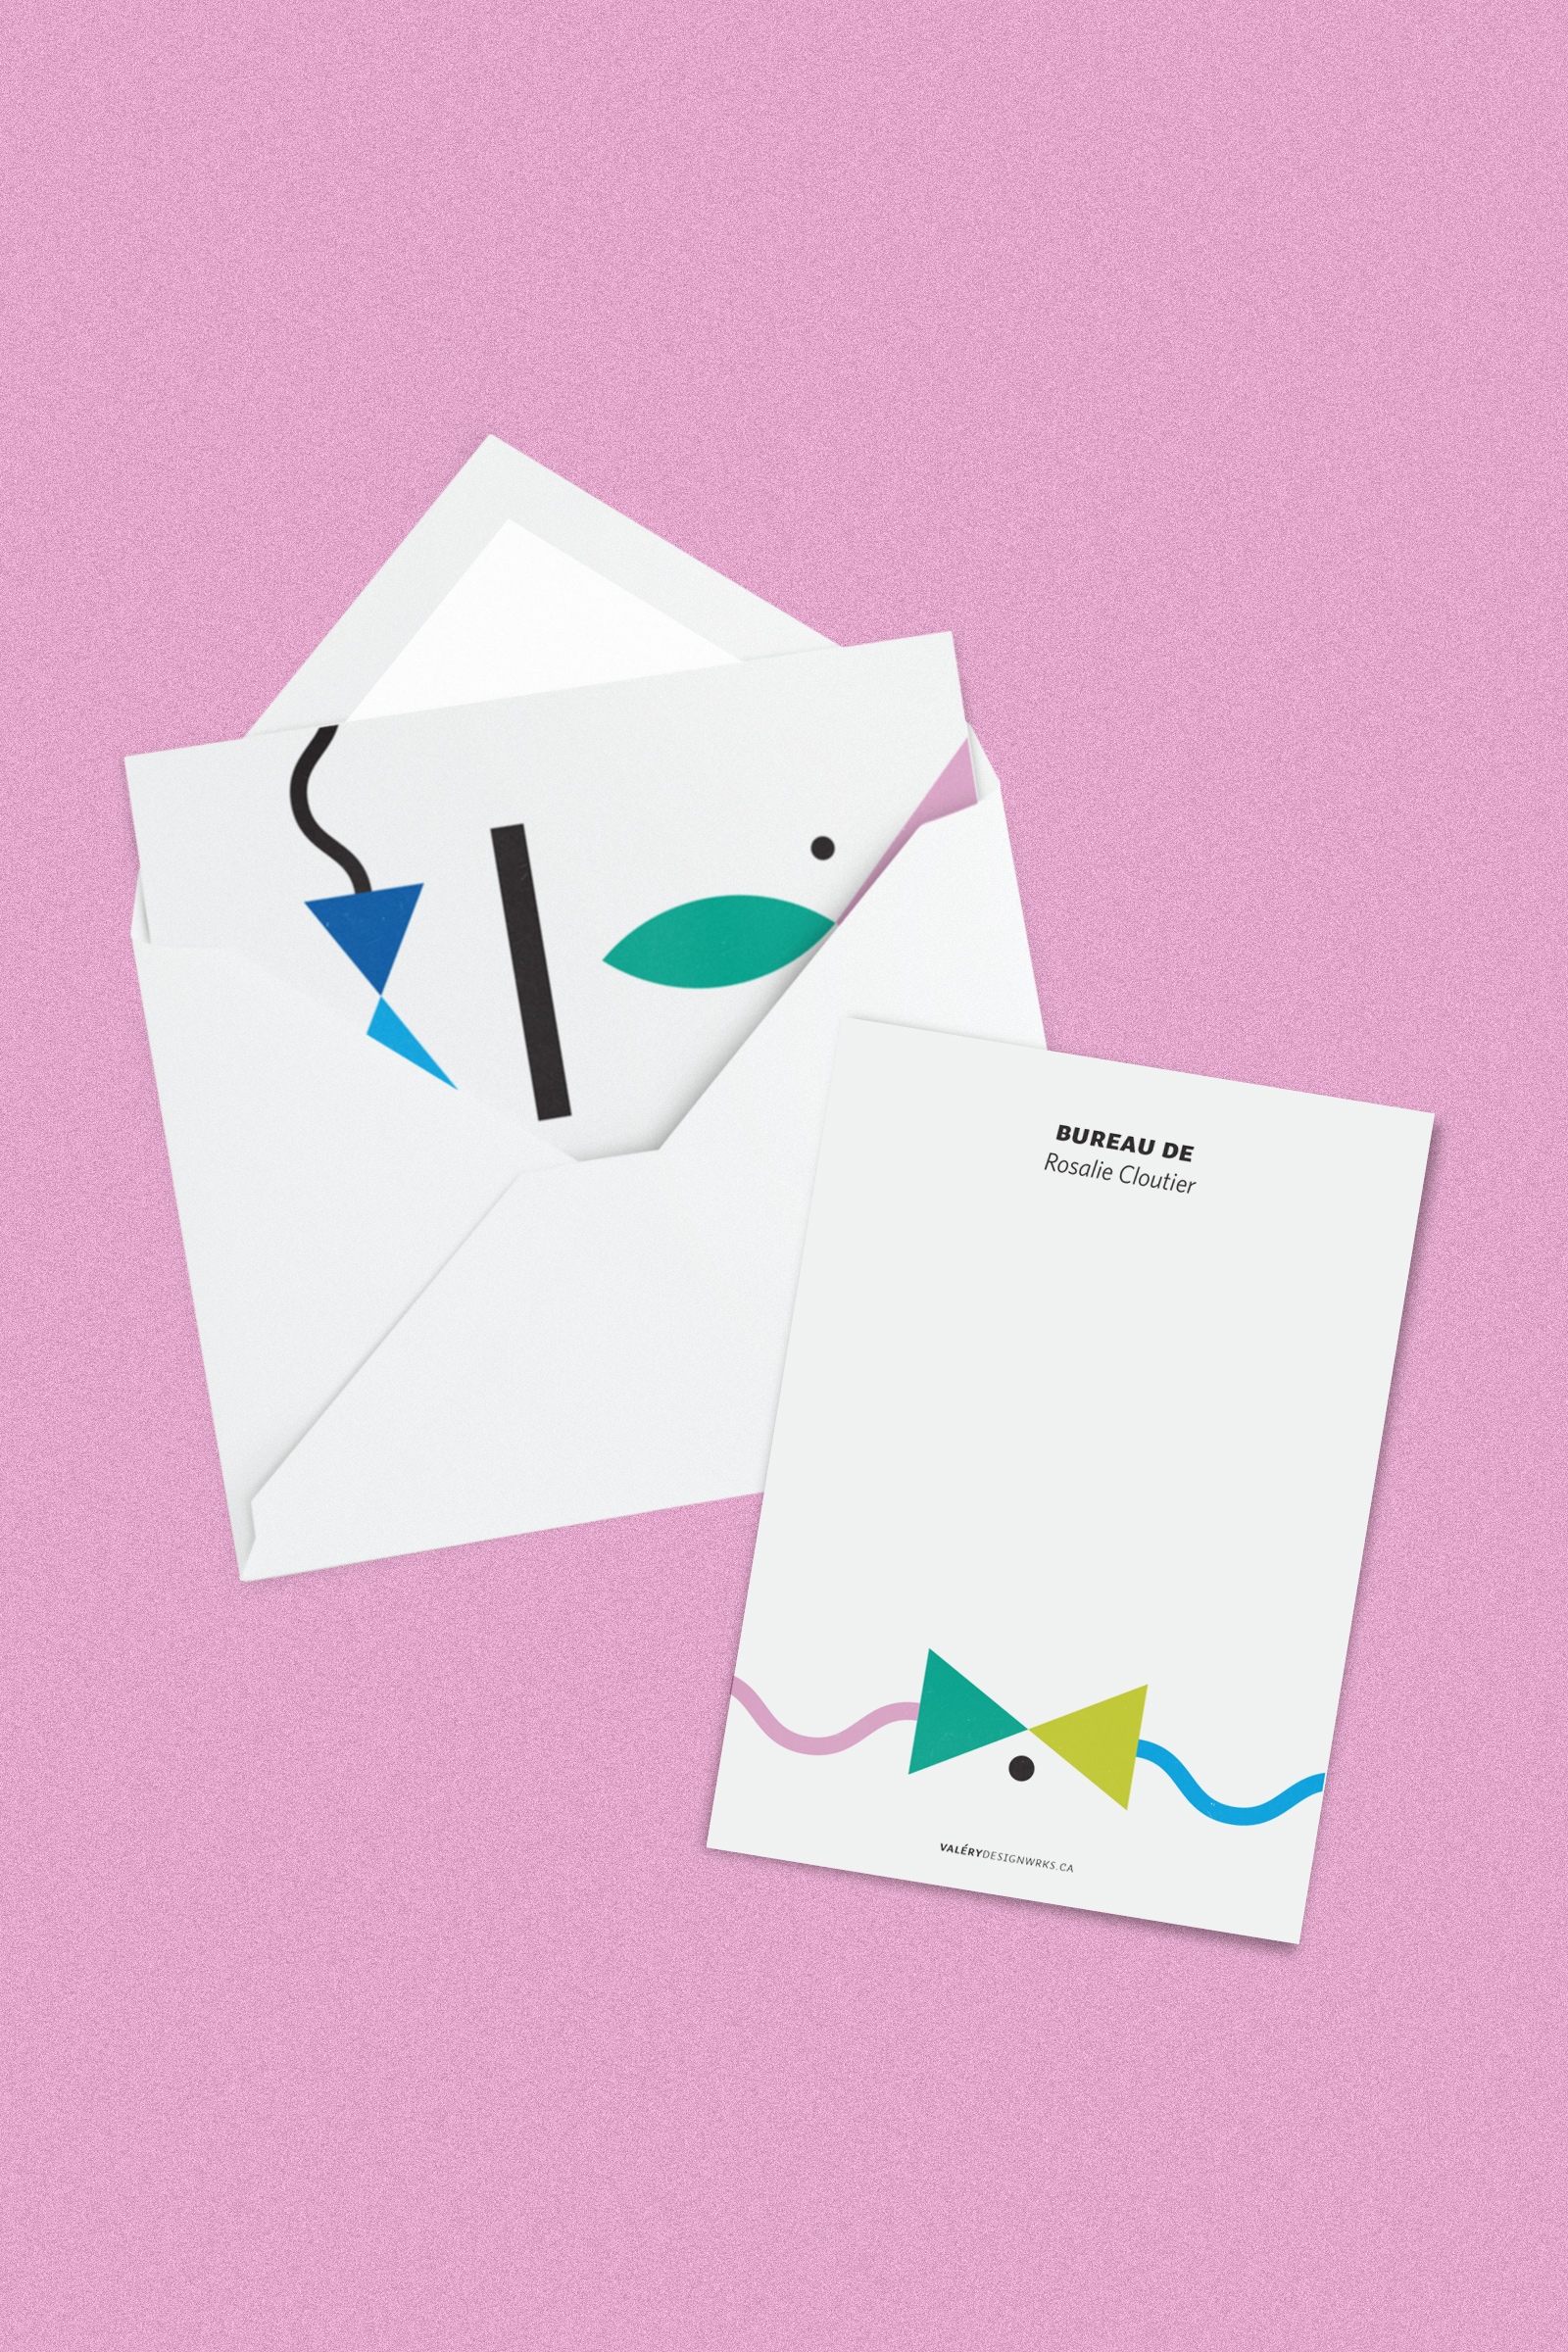 Personalized stationery in French